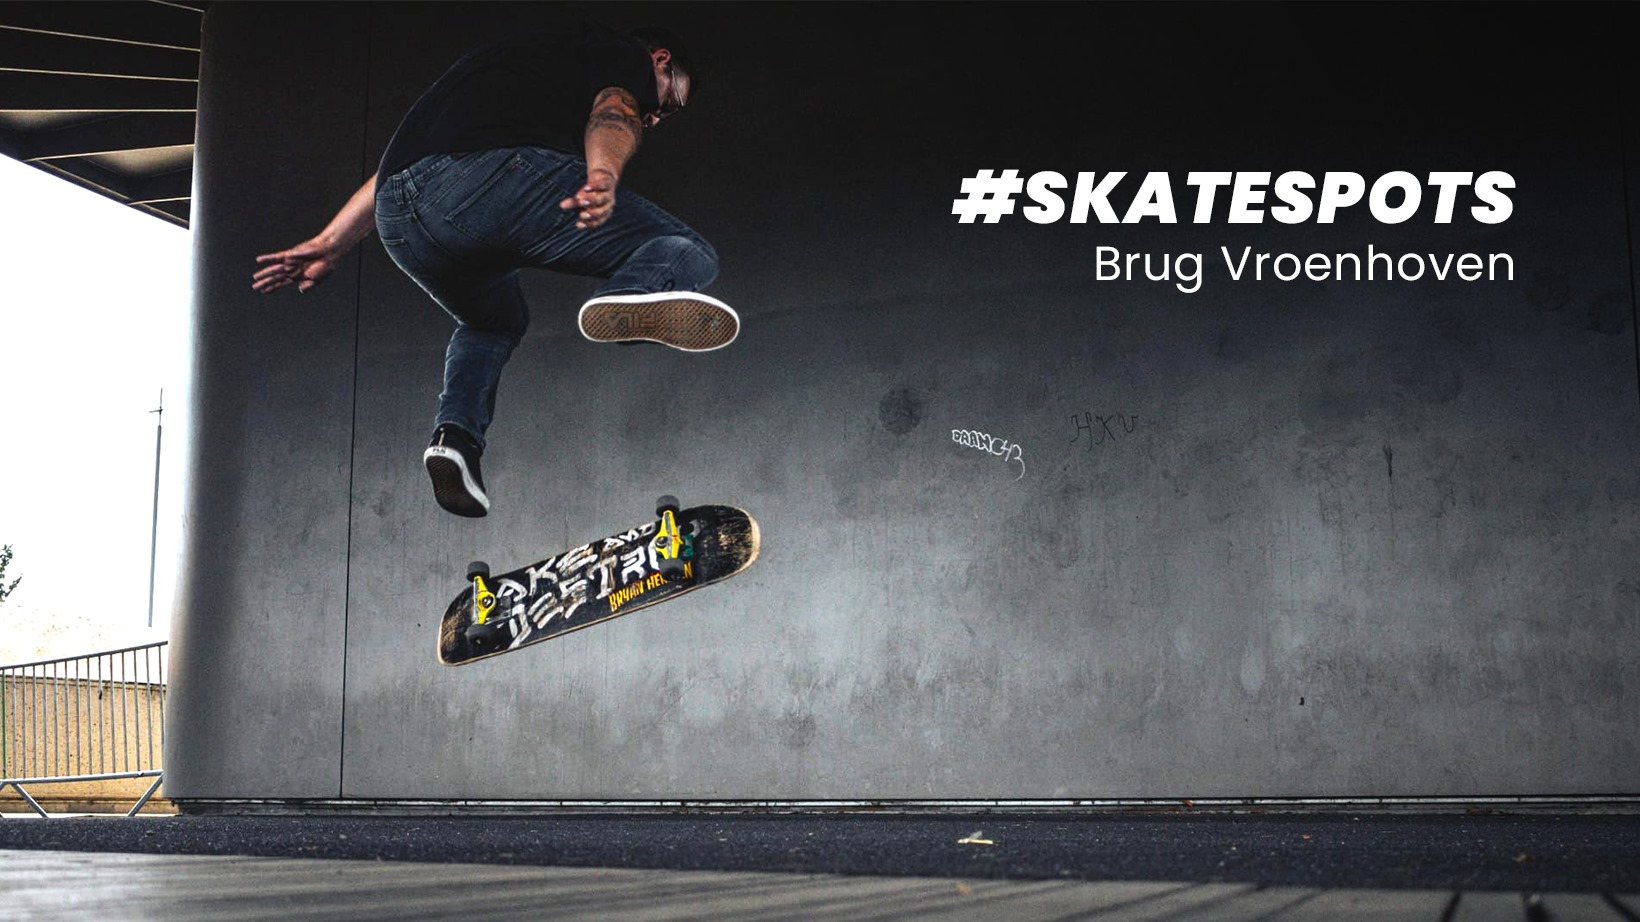 What do you think of the new Skatespots website?